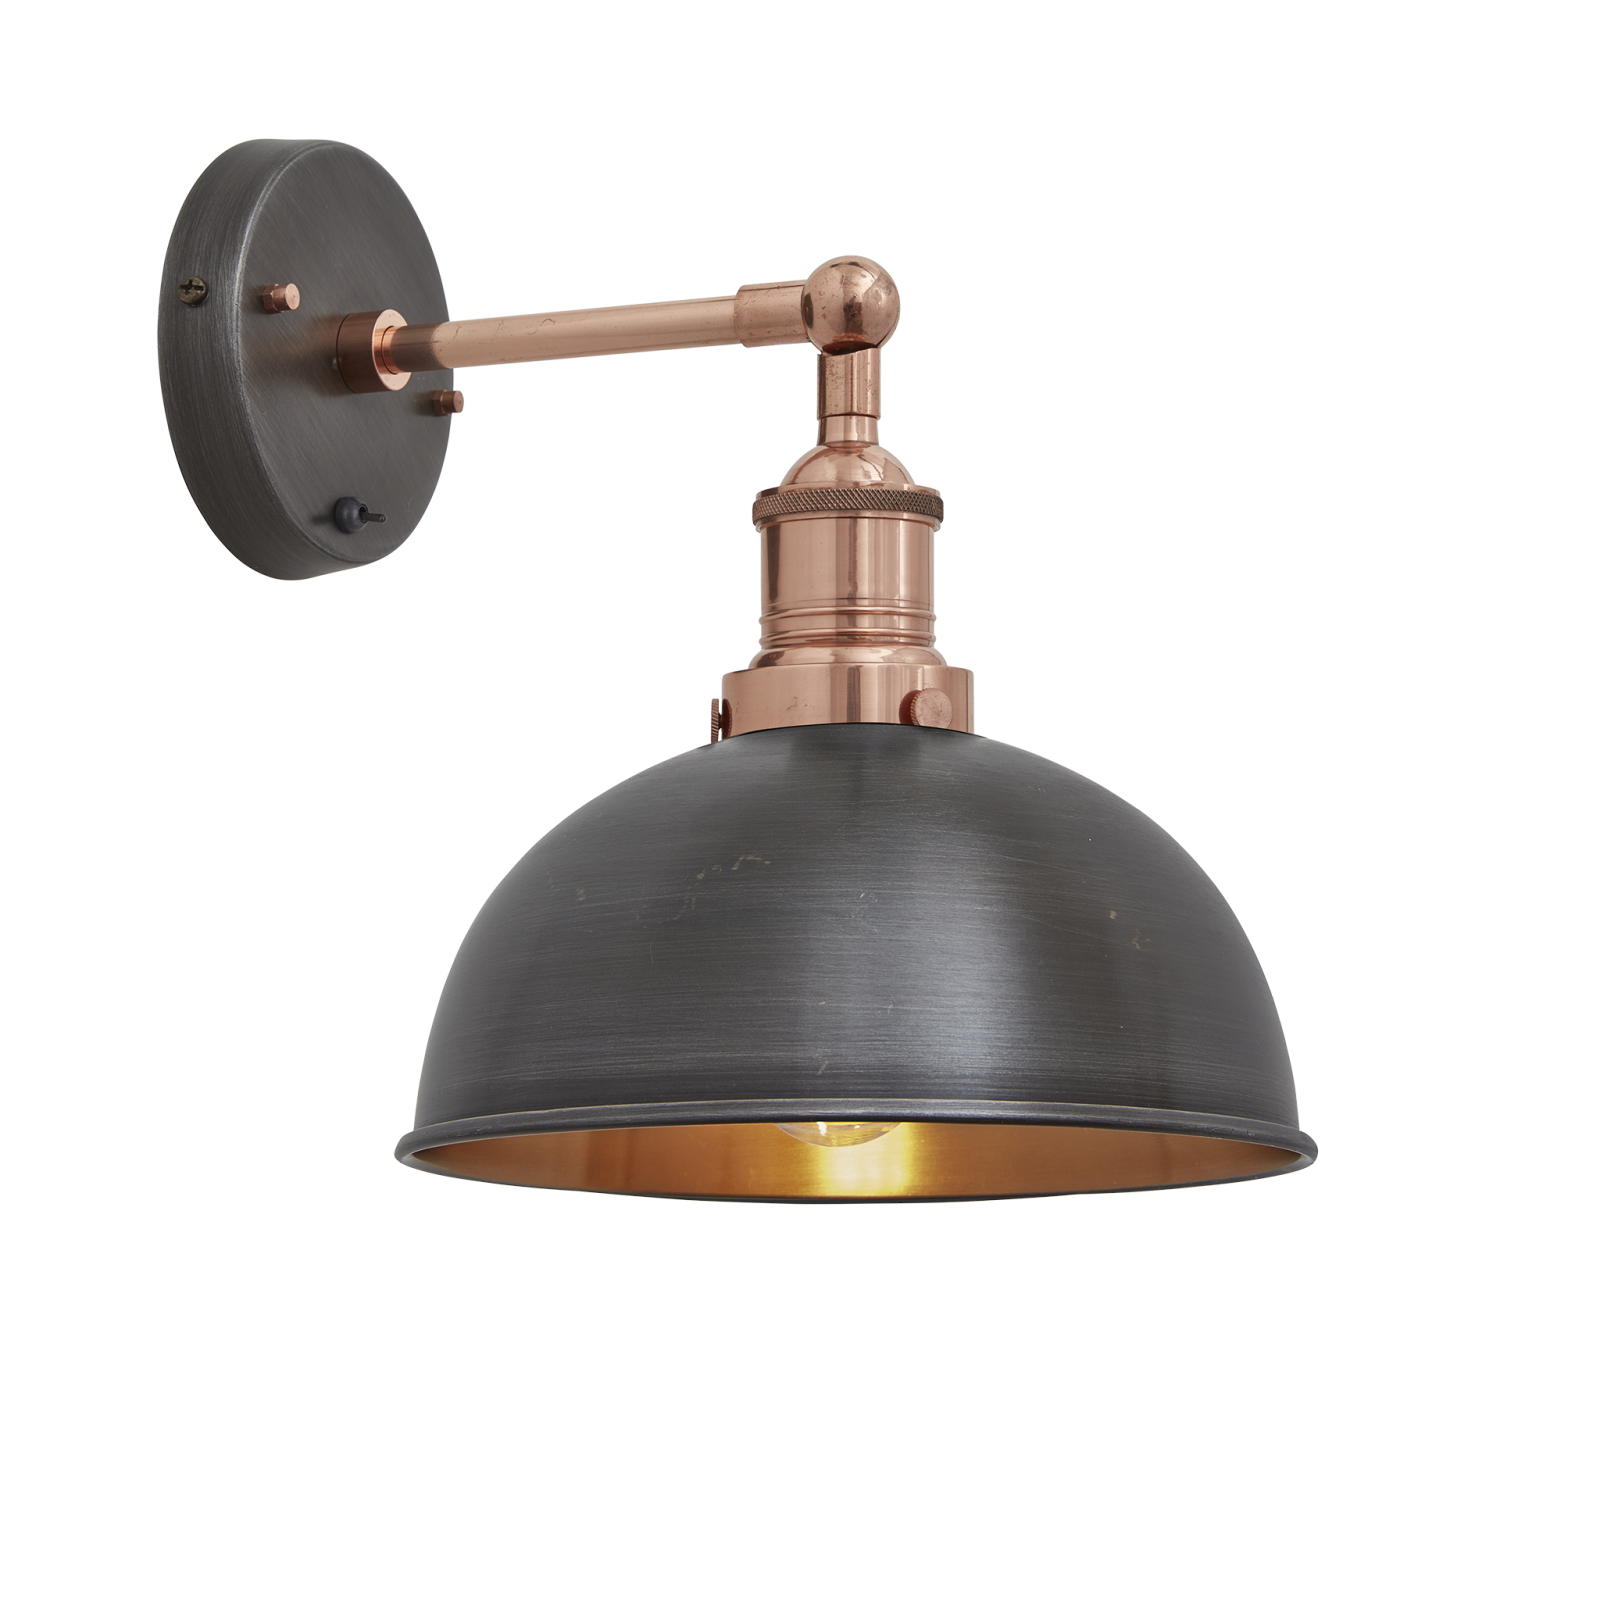 Brooklyn Dome Wall Light - 8 Inch Pewter & Copper Shade, Copper Holder